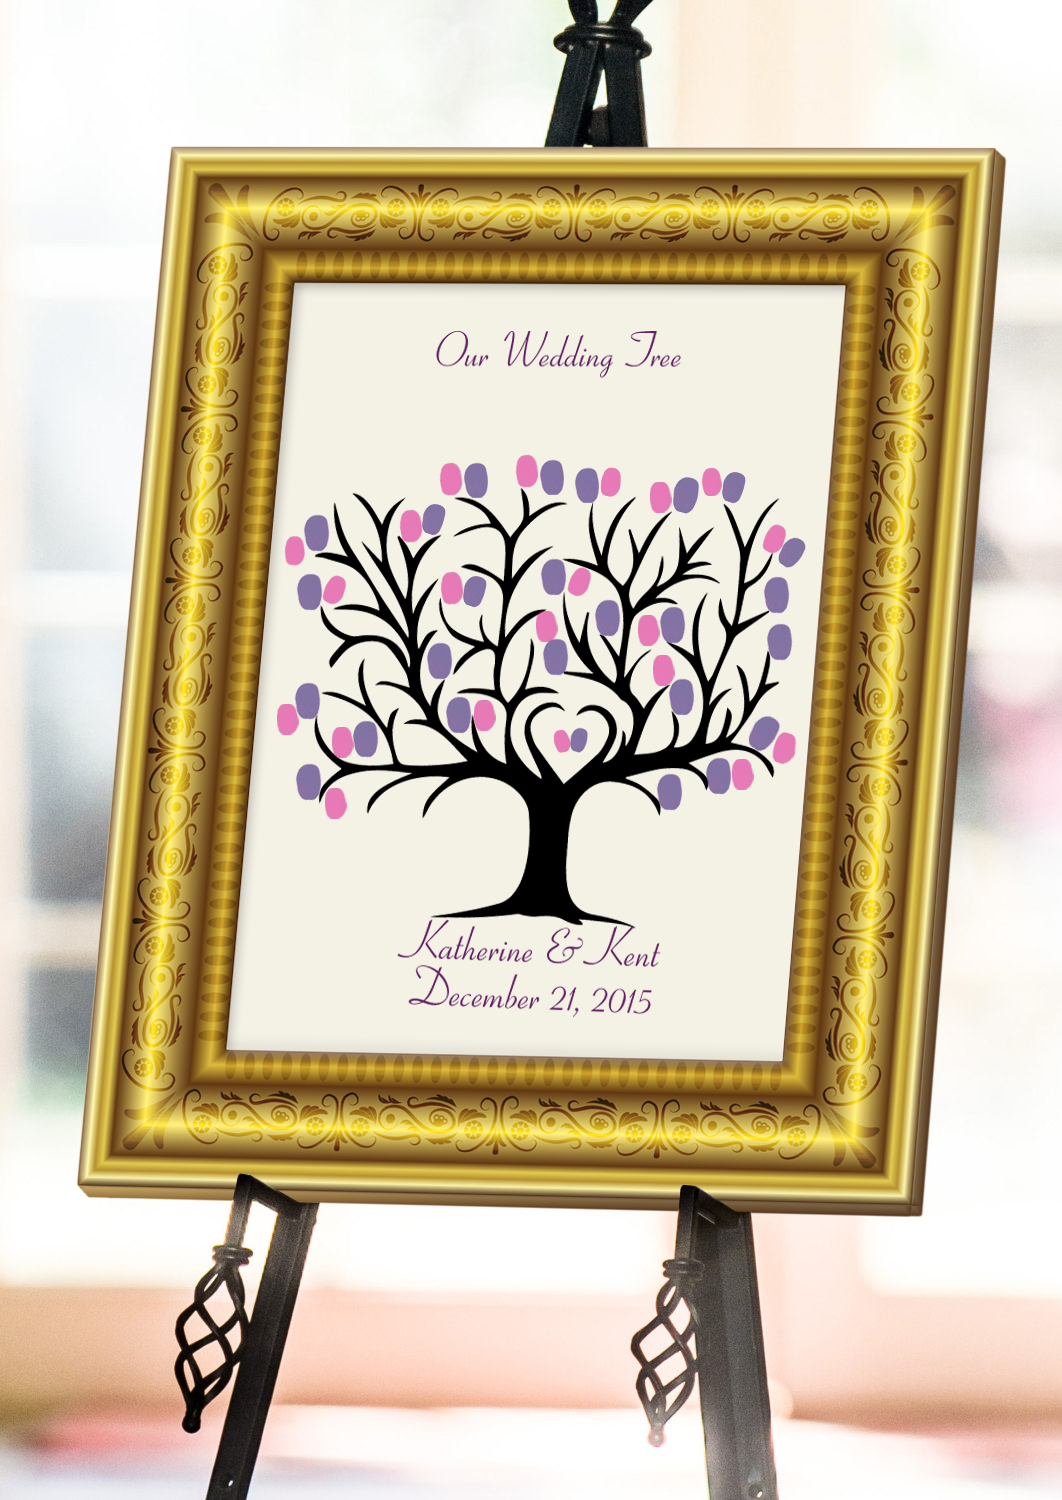 Wedding Fingerprint Tree - GORGEOUS & BEAUTIFUL Fingerprint Trees or Thumbprint Guestbooks  for any event or occasion that can be INSTANTLY created, customized, and downloaded in minutes with Fingerprint Tree Generator.  Create your tree now @ http://fingerprinttreegenerator.com/fingerprint-tree-generator/